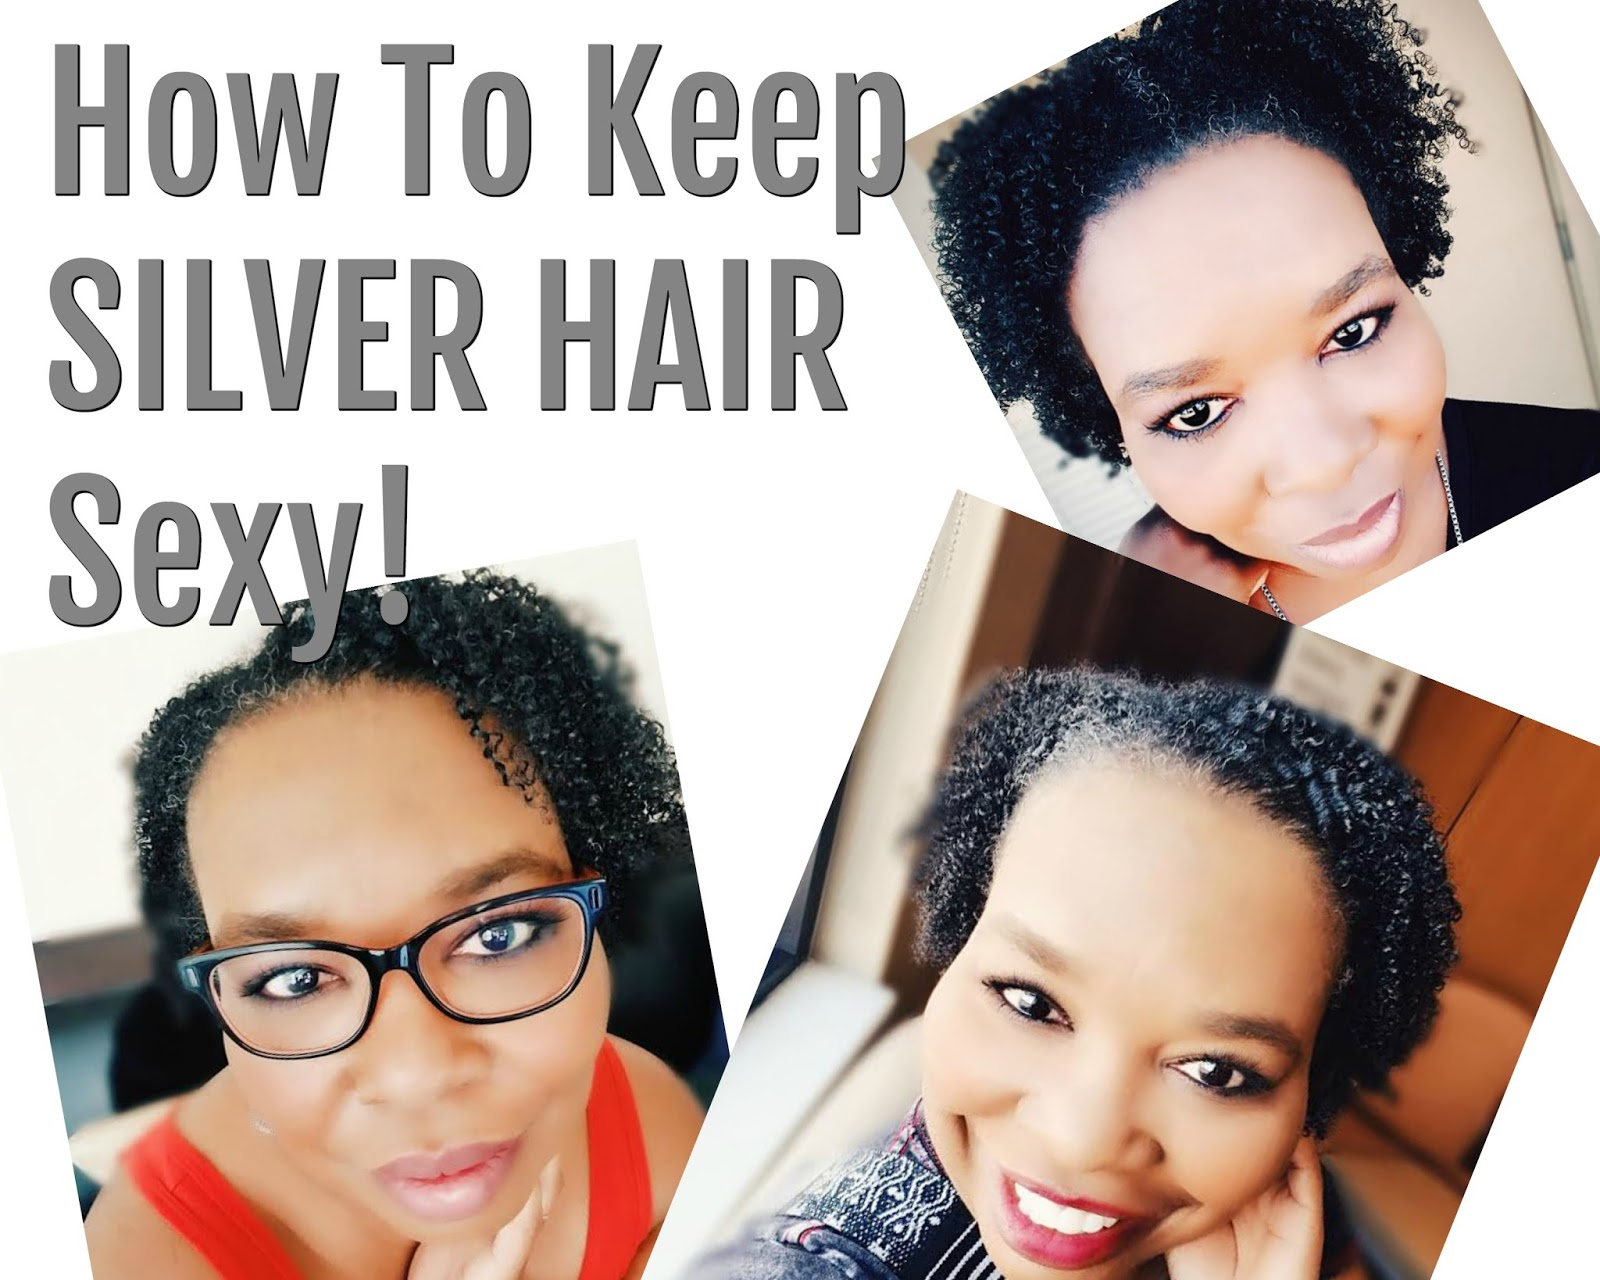 If you love your gray or silver hair, but have a tough time keeping it from yellowing, check out these simple tips and products that will keep it sexy!